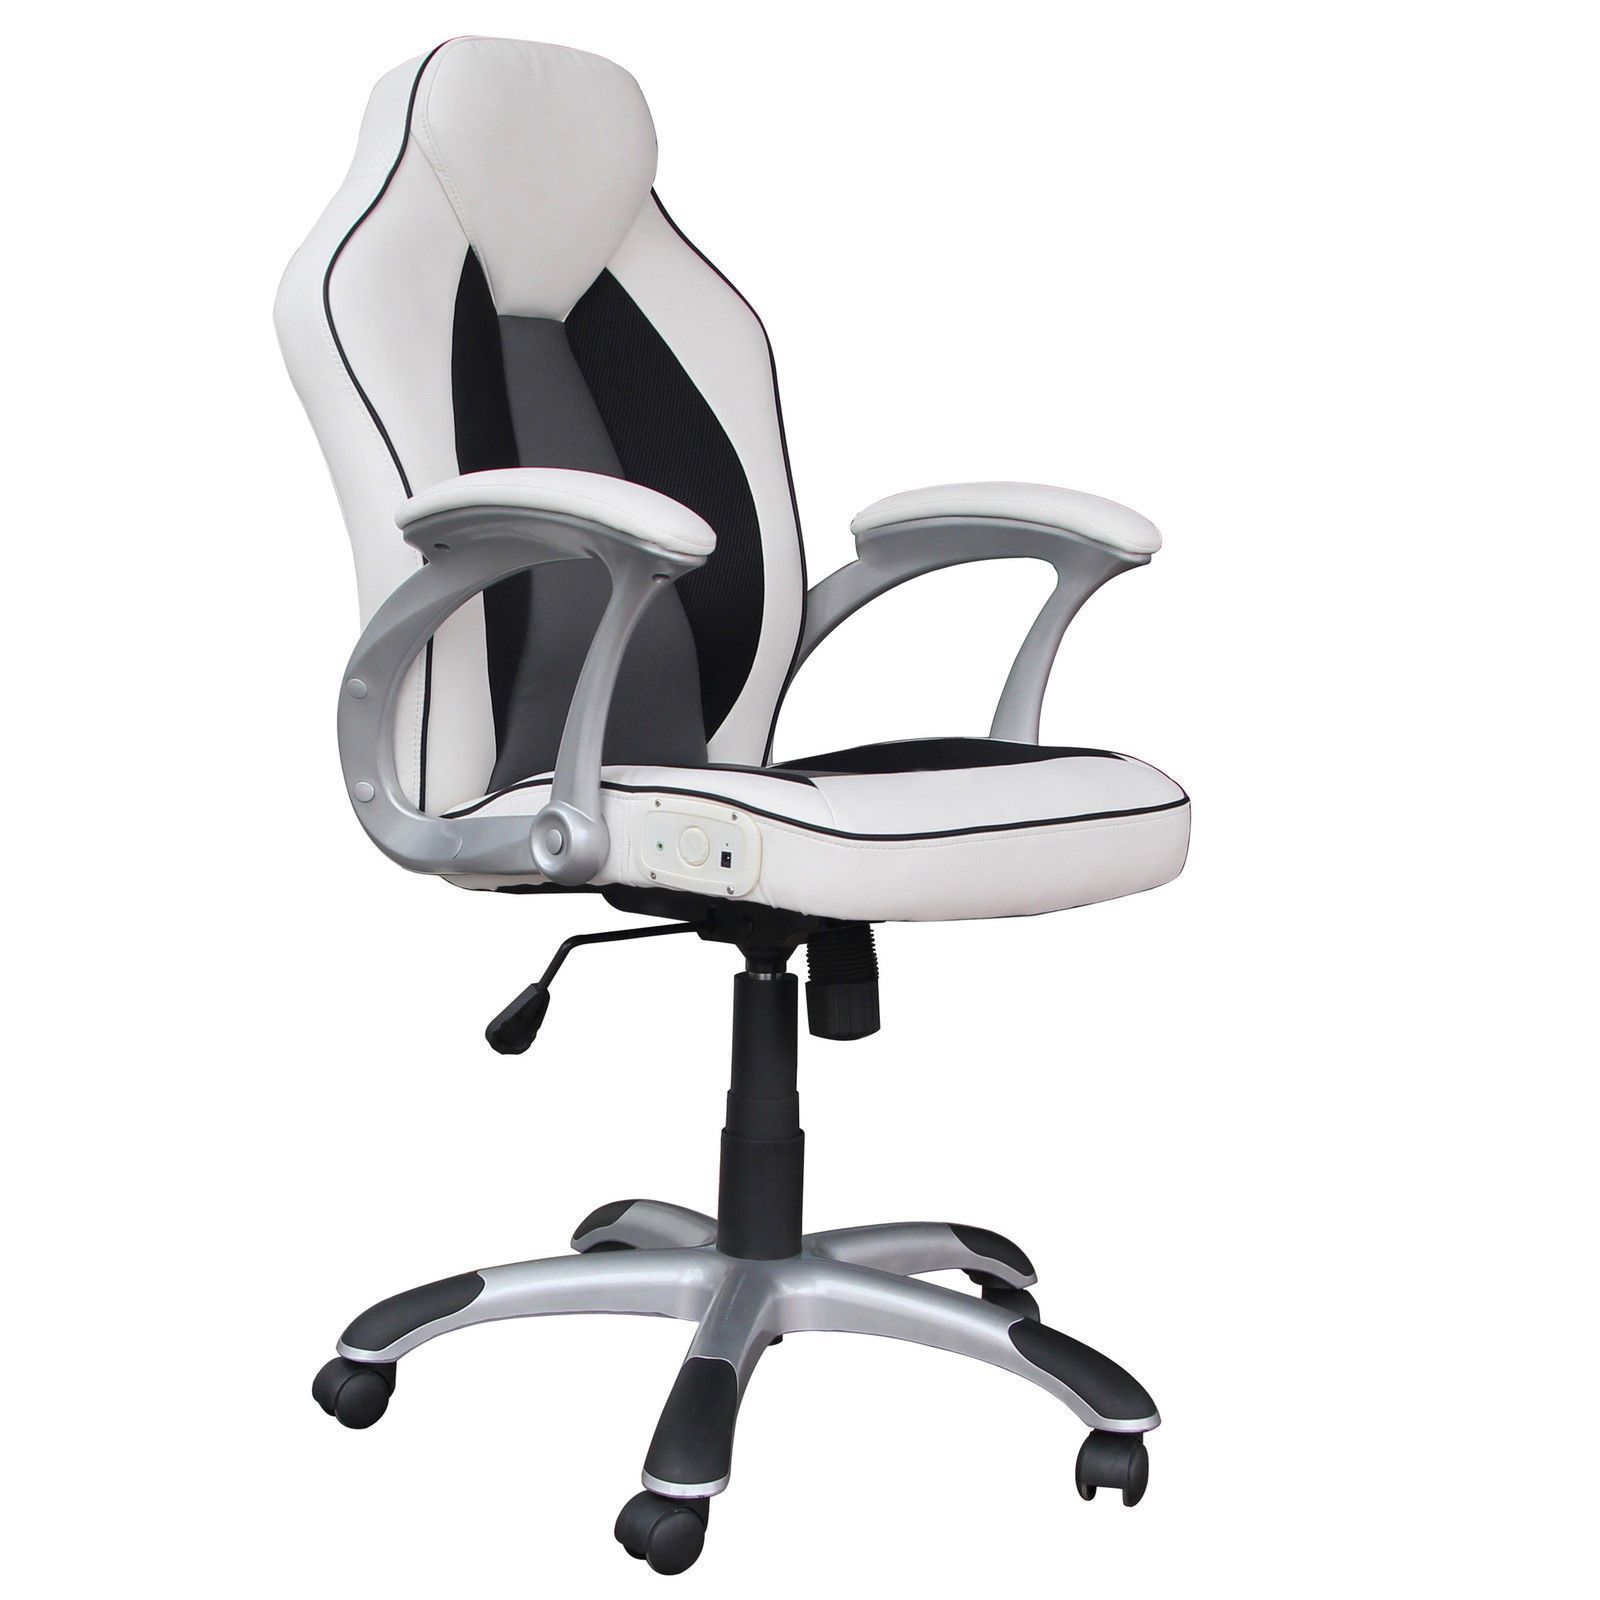 Remarkable X Rocker Video Gaming Office Chair 2 0 Bluetooth Wireless Uwap Interior Chair Design Uwaporg